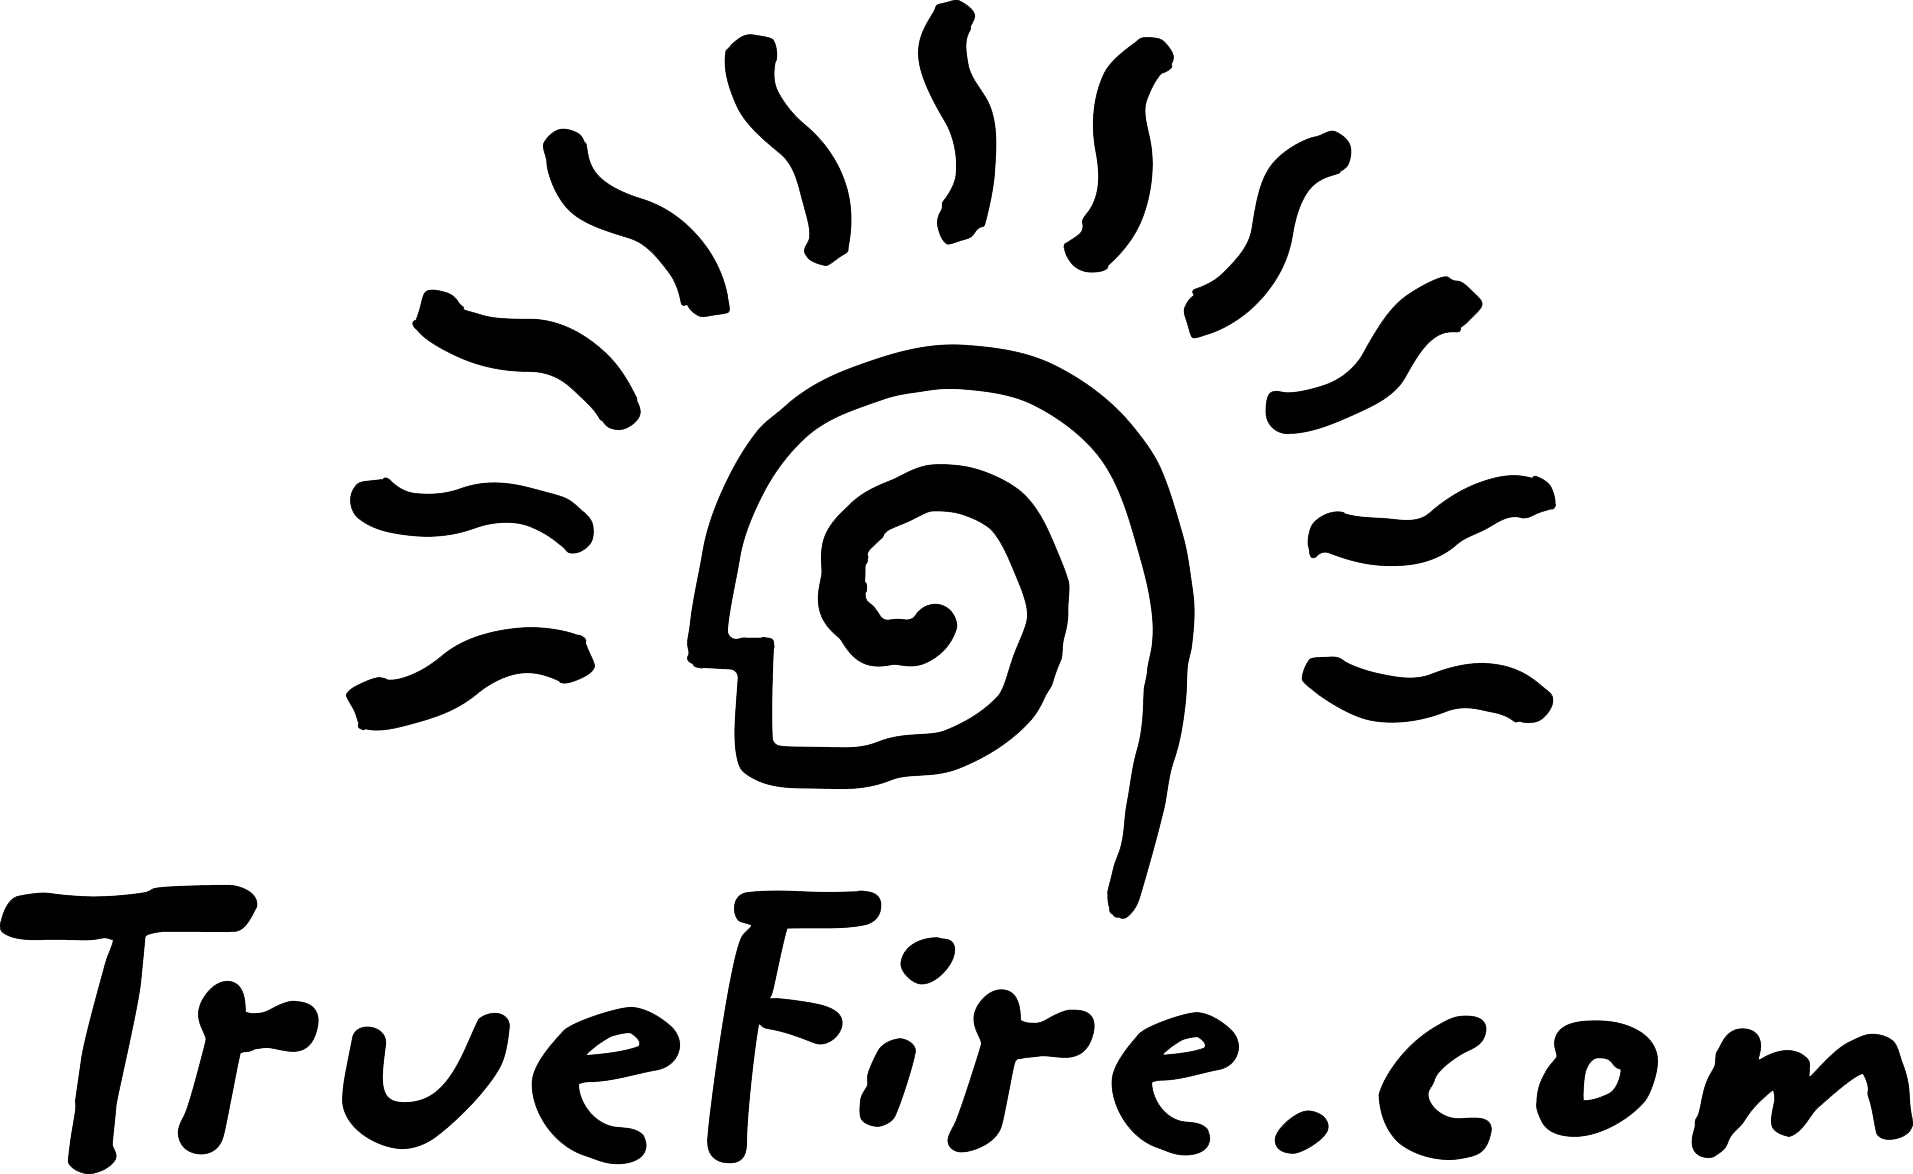 TrueFire Logo - Spiral Gun for Best Online Guitar Lessons